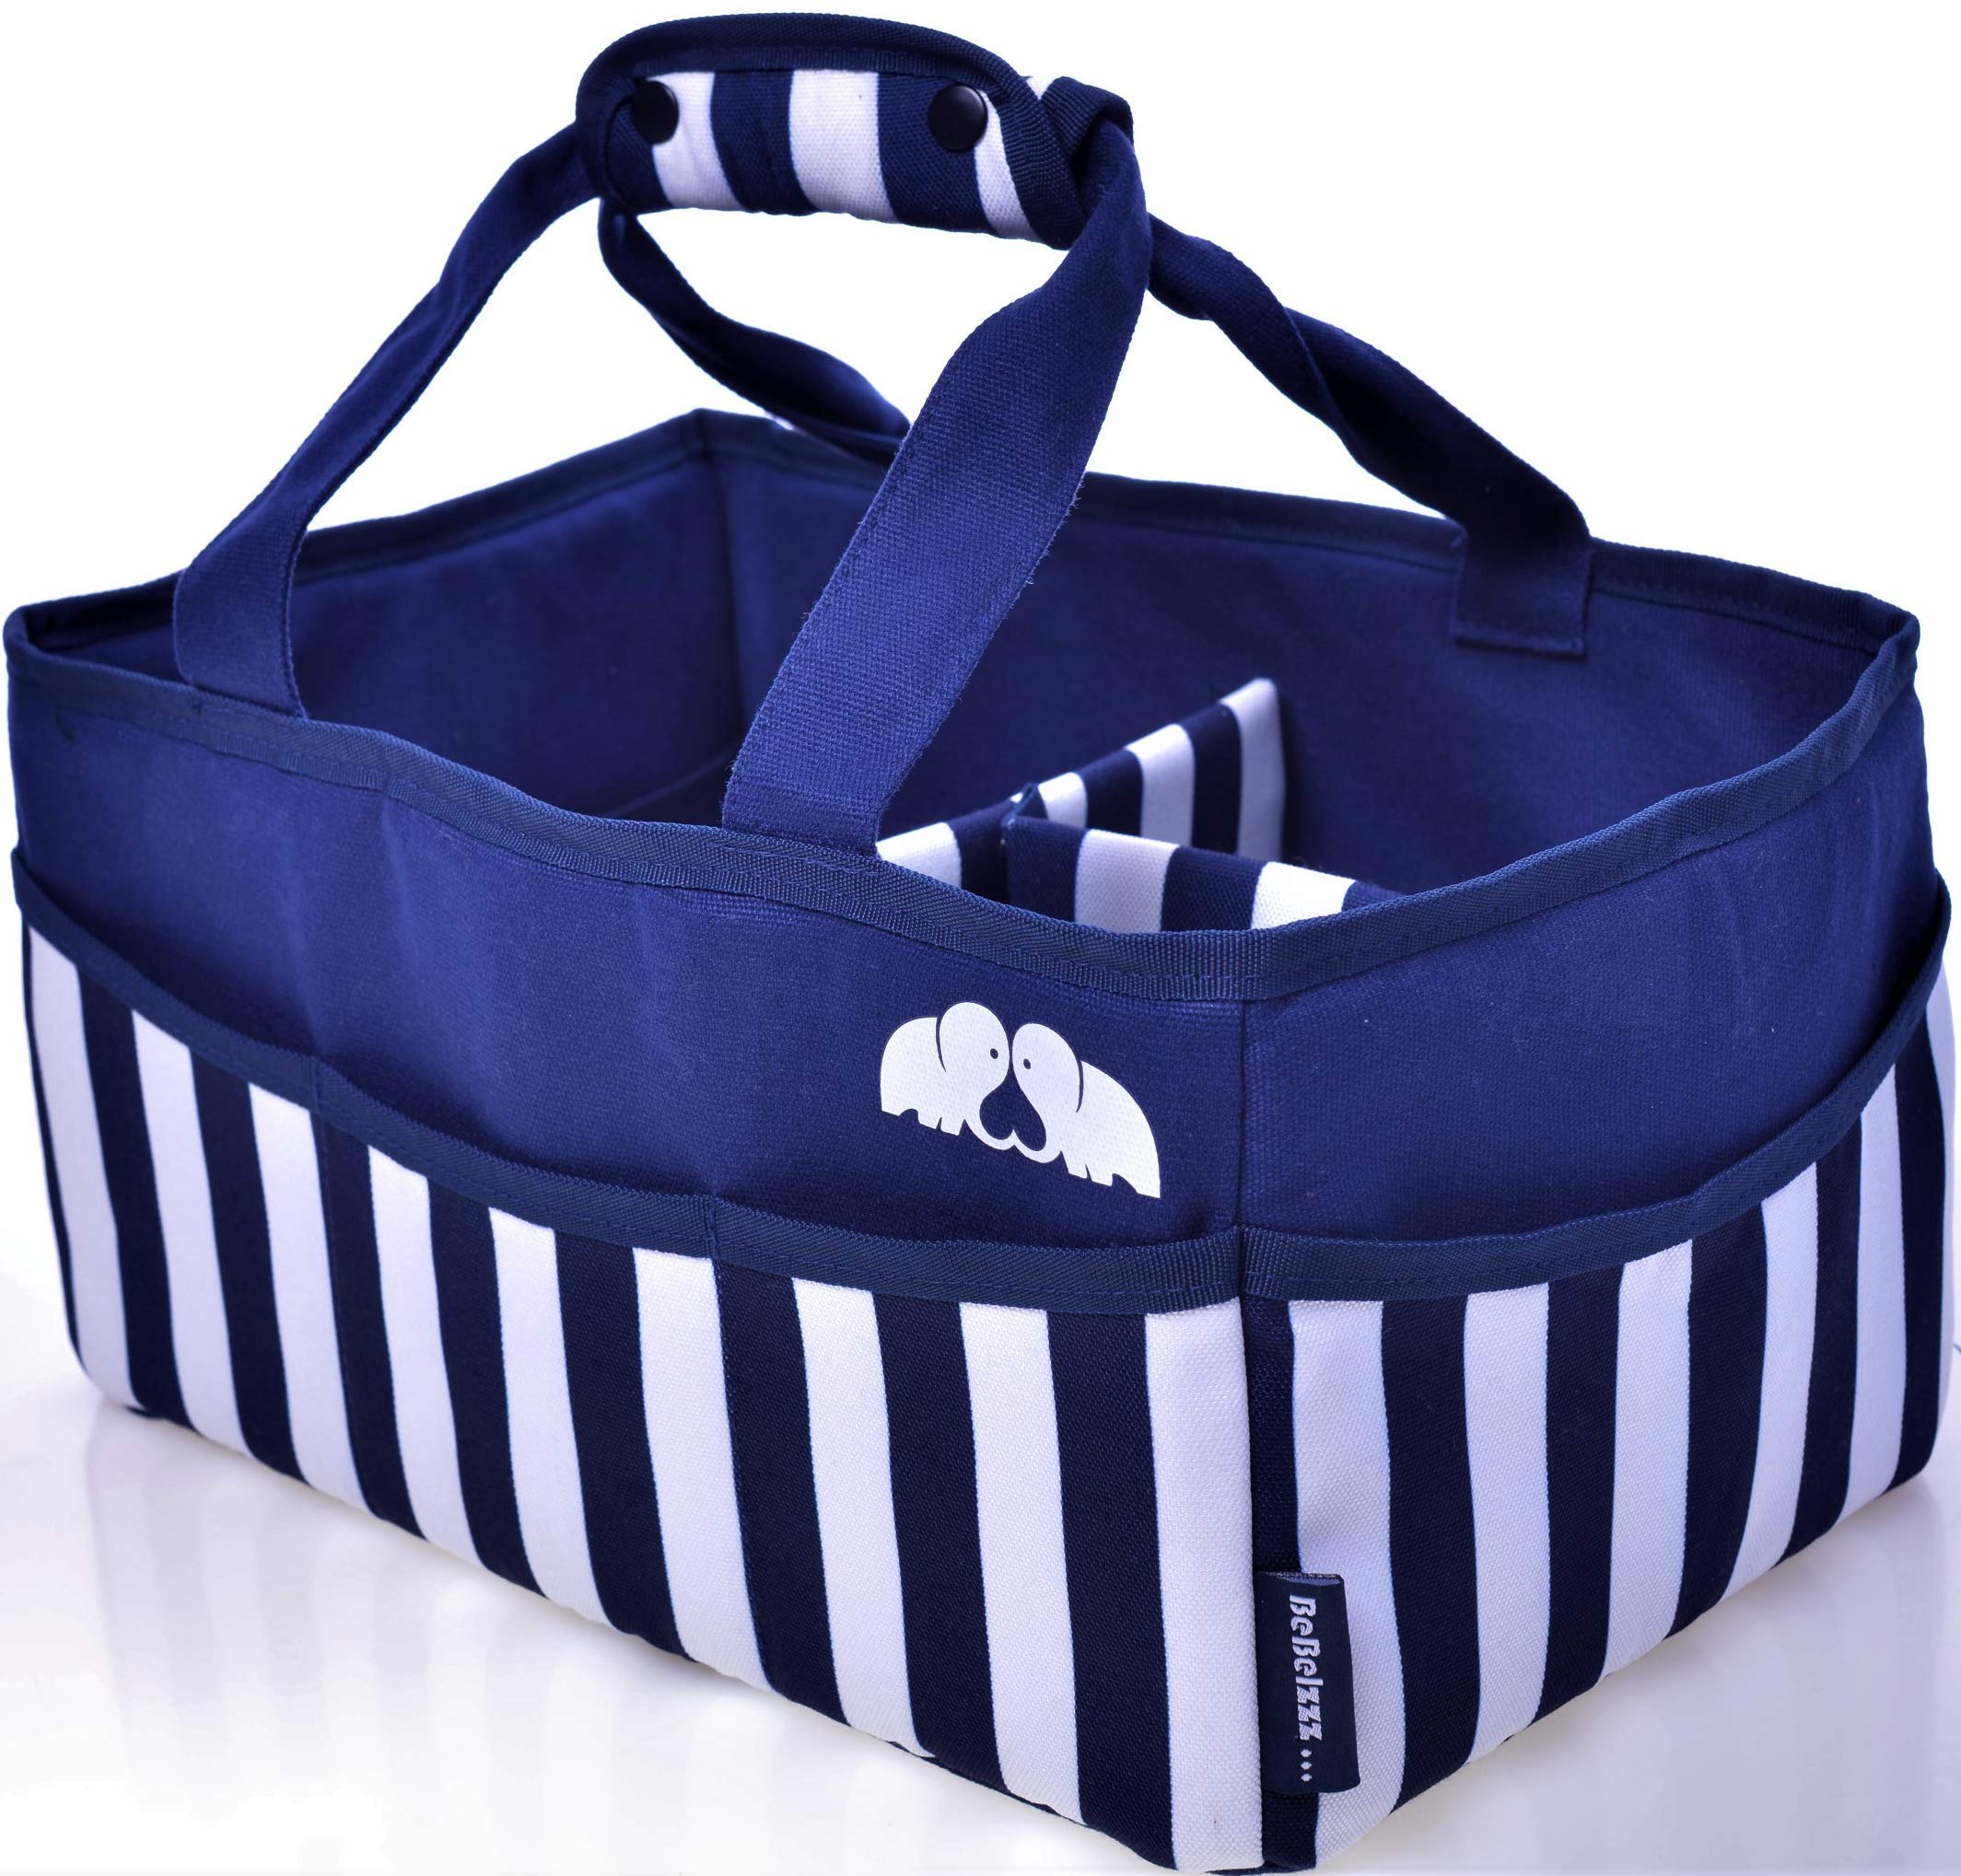 [Baby Diaper Caddy Organizer - WASHABLE] Boys & Girls blue navy chevron - EXTRA LARGE Tote bag Portable Car - Wipes Diapers & Toys bin - Changing Compartments - Newborn Registry & Nursery basket table